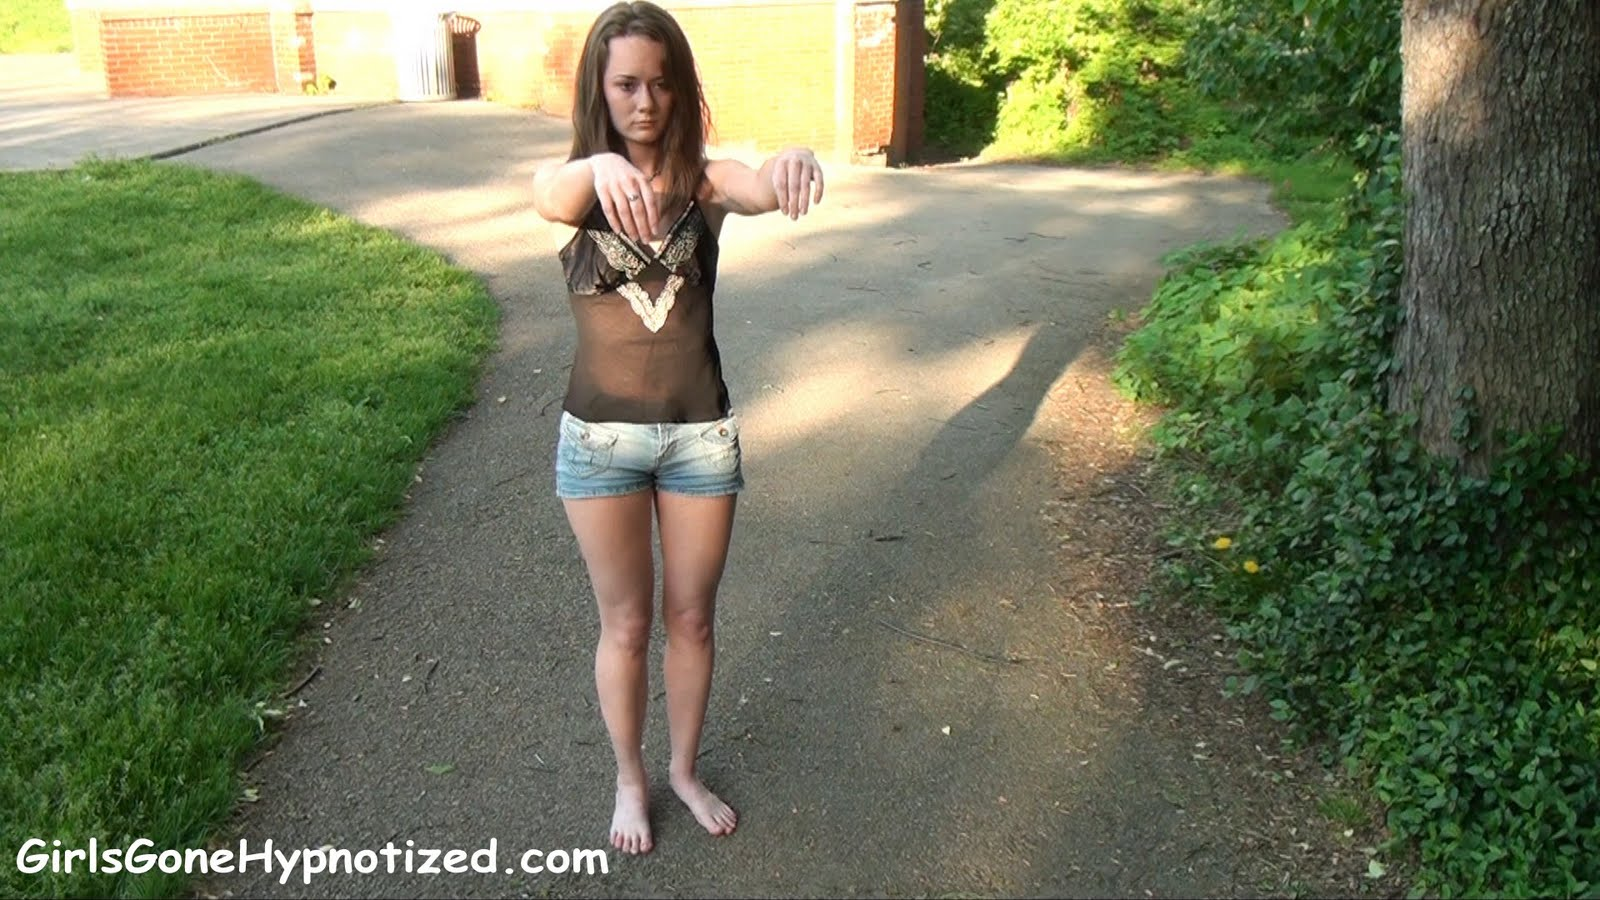 Brittany+4 19 year old hypnotized girl A new video has been posted over at Girls Gone ...